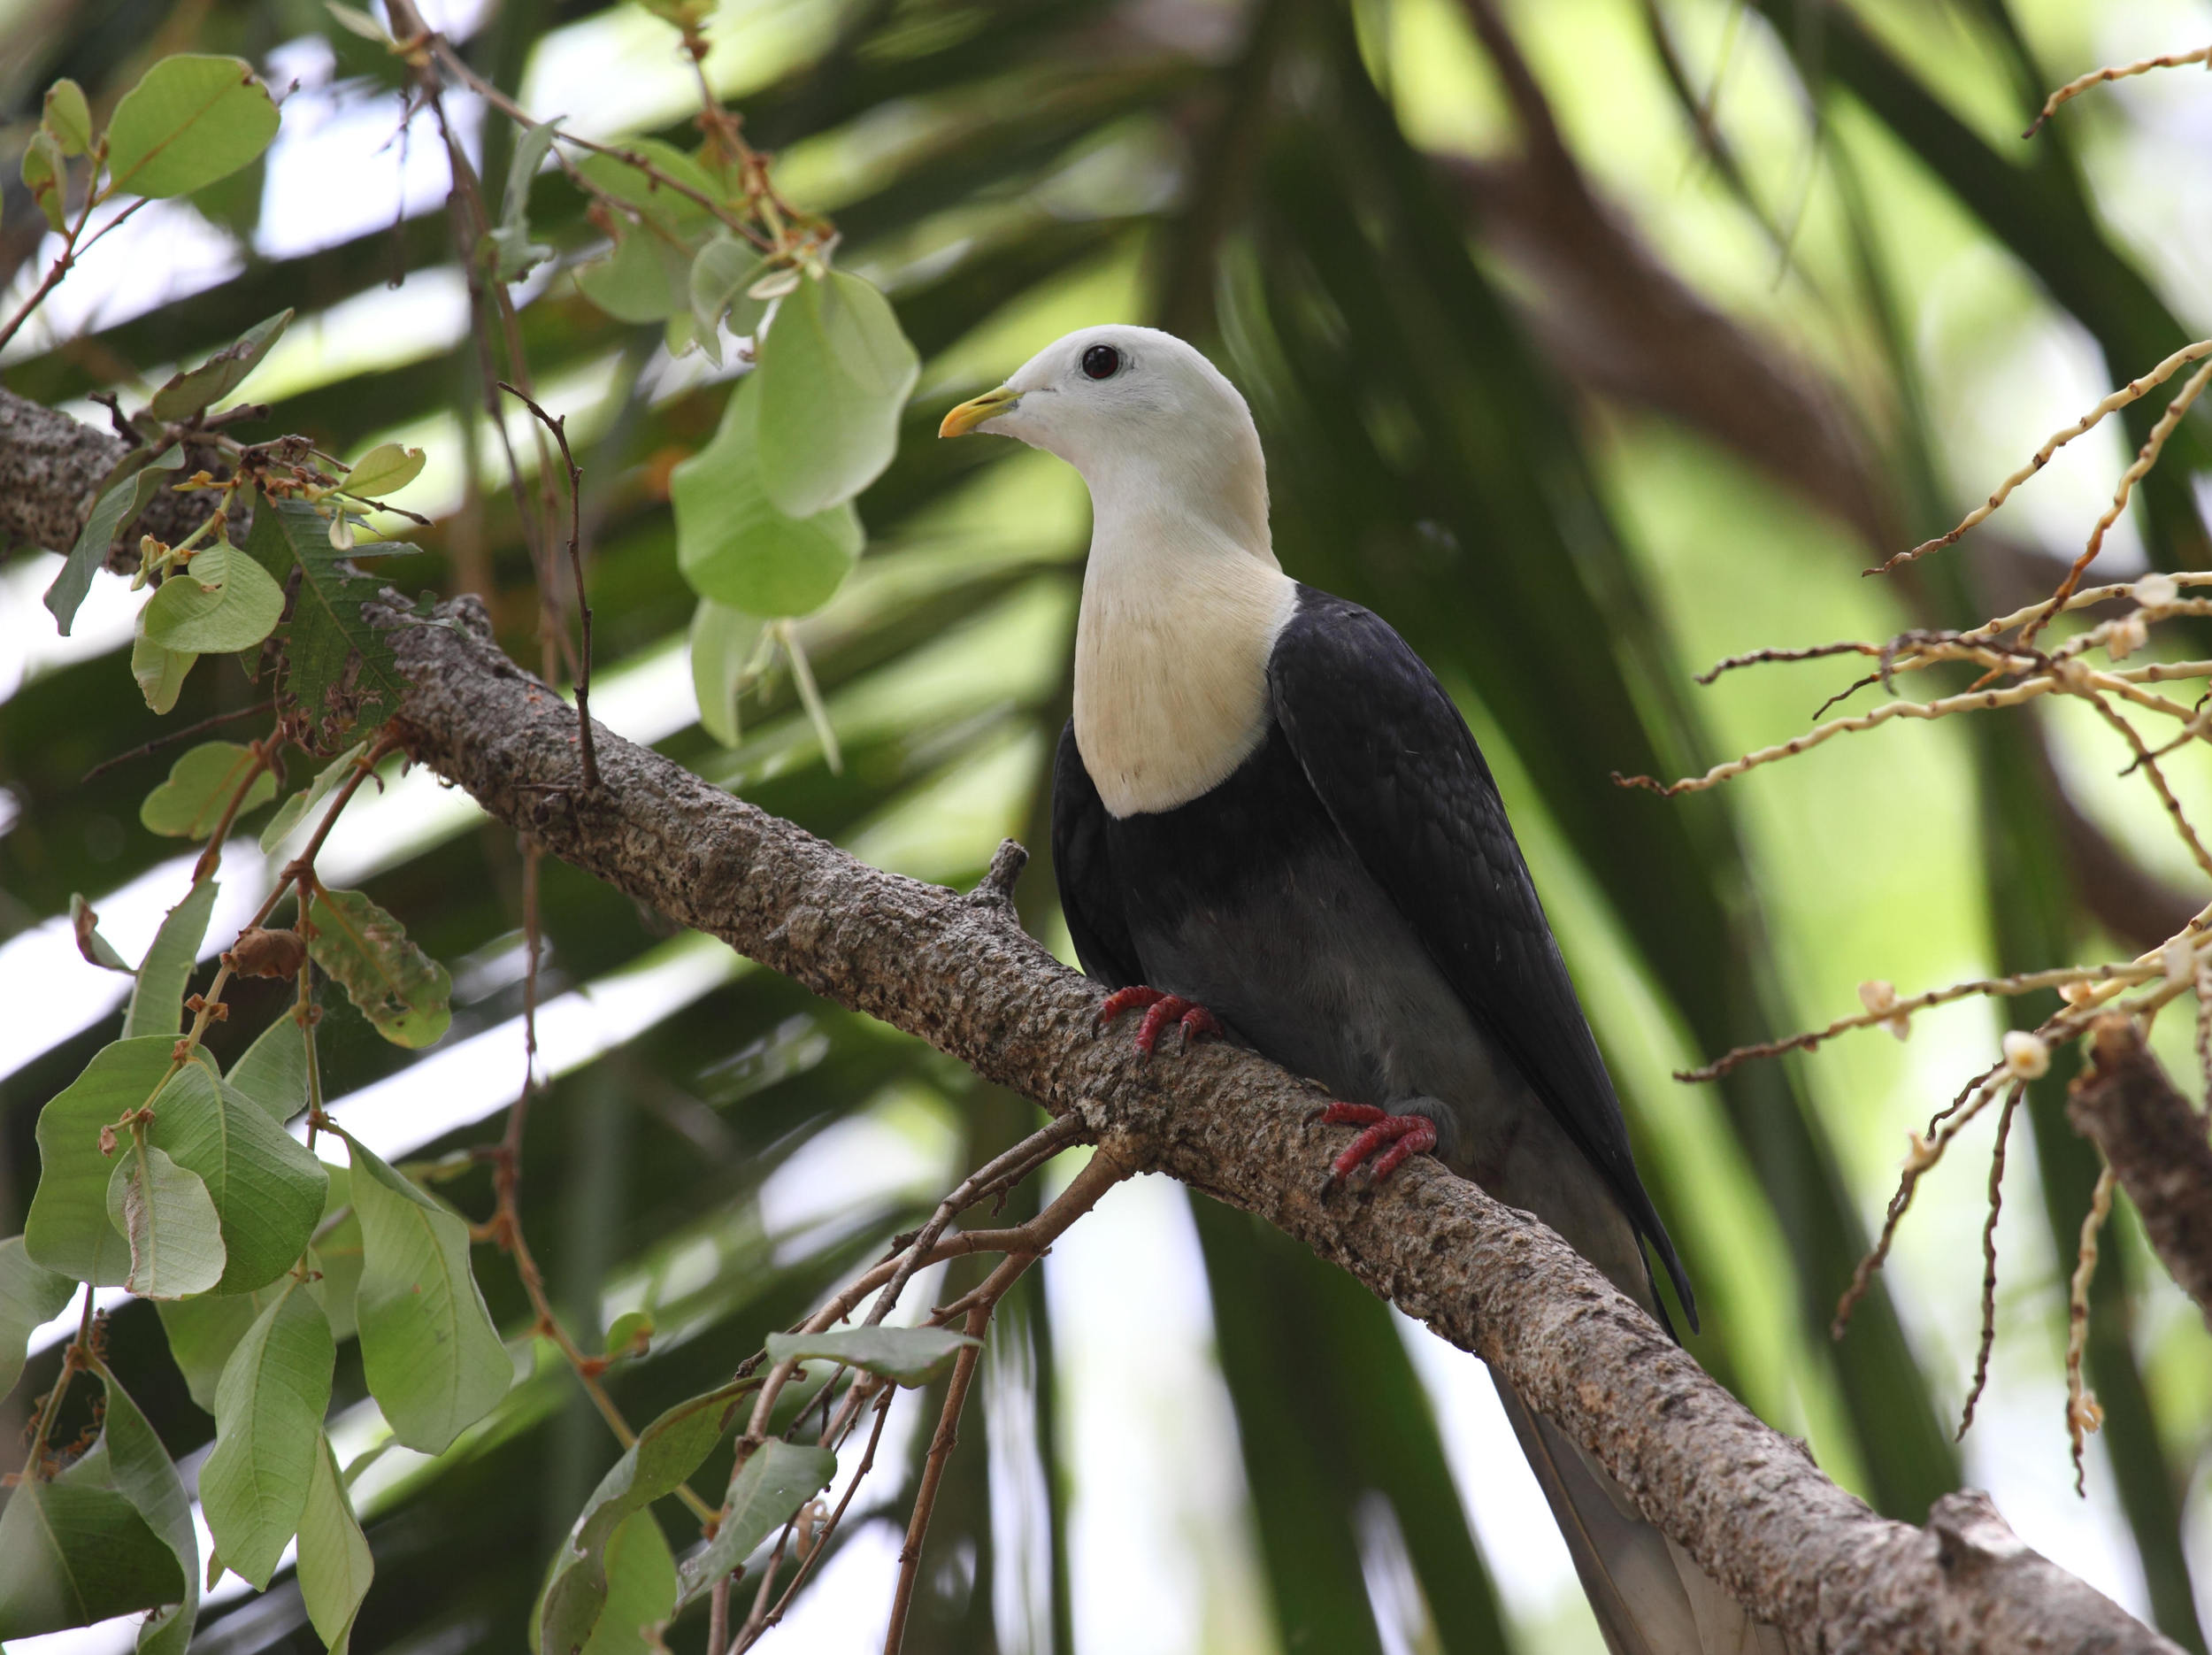 A regional endemic - Black-banded Fruit Dove